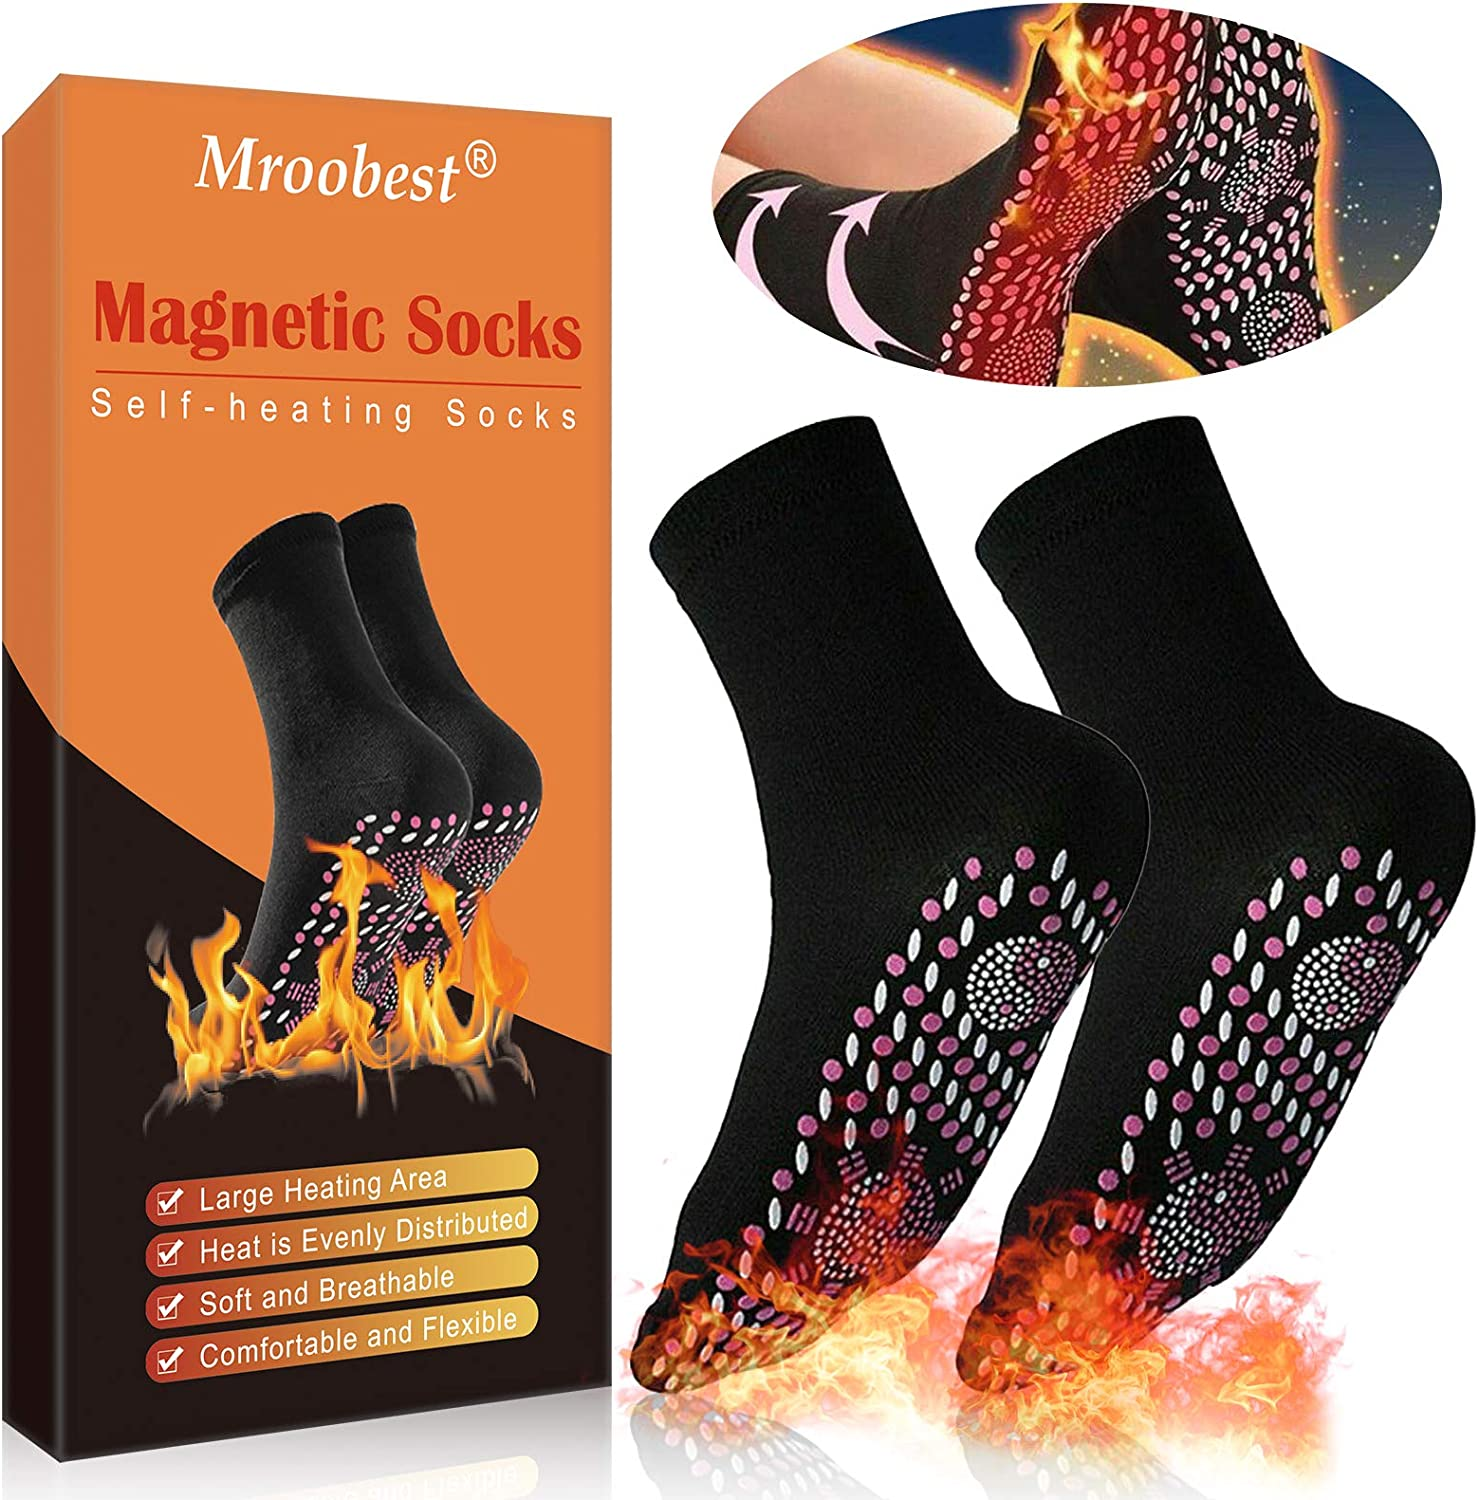 Magnetic Socks, Heated Socks, Thermal Foot Warmer Socks, Comfortable & Breathable Winter Warm Cotton Socks for Outdoor Sports/ Cycling Riding/Skiing Skating/Hiking Hunting, Men & Women